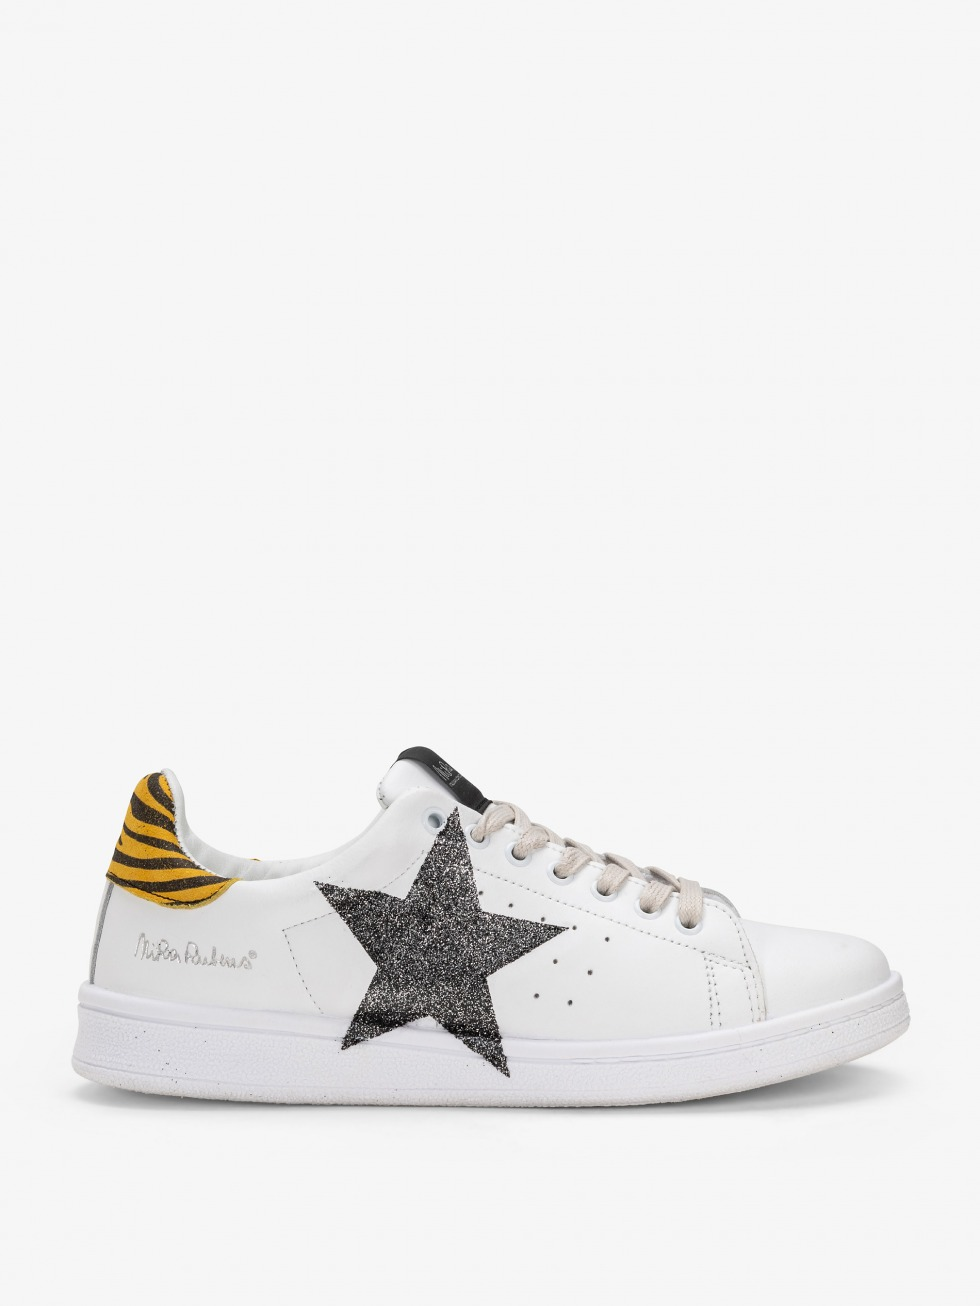 Daiquiri Tiger Sneakers - Star